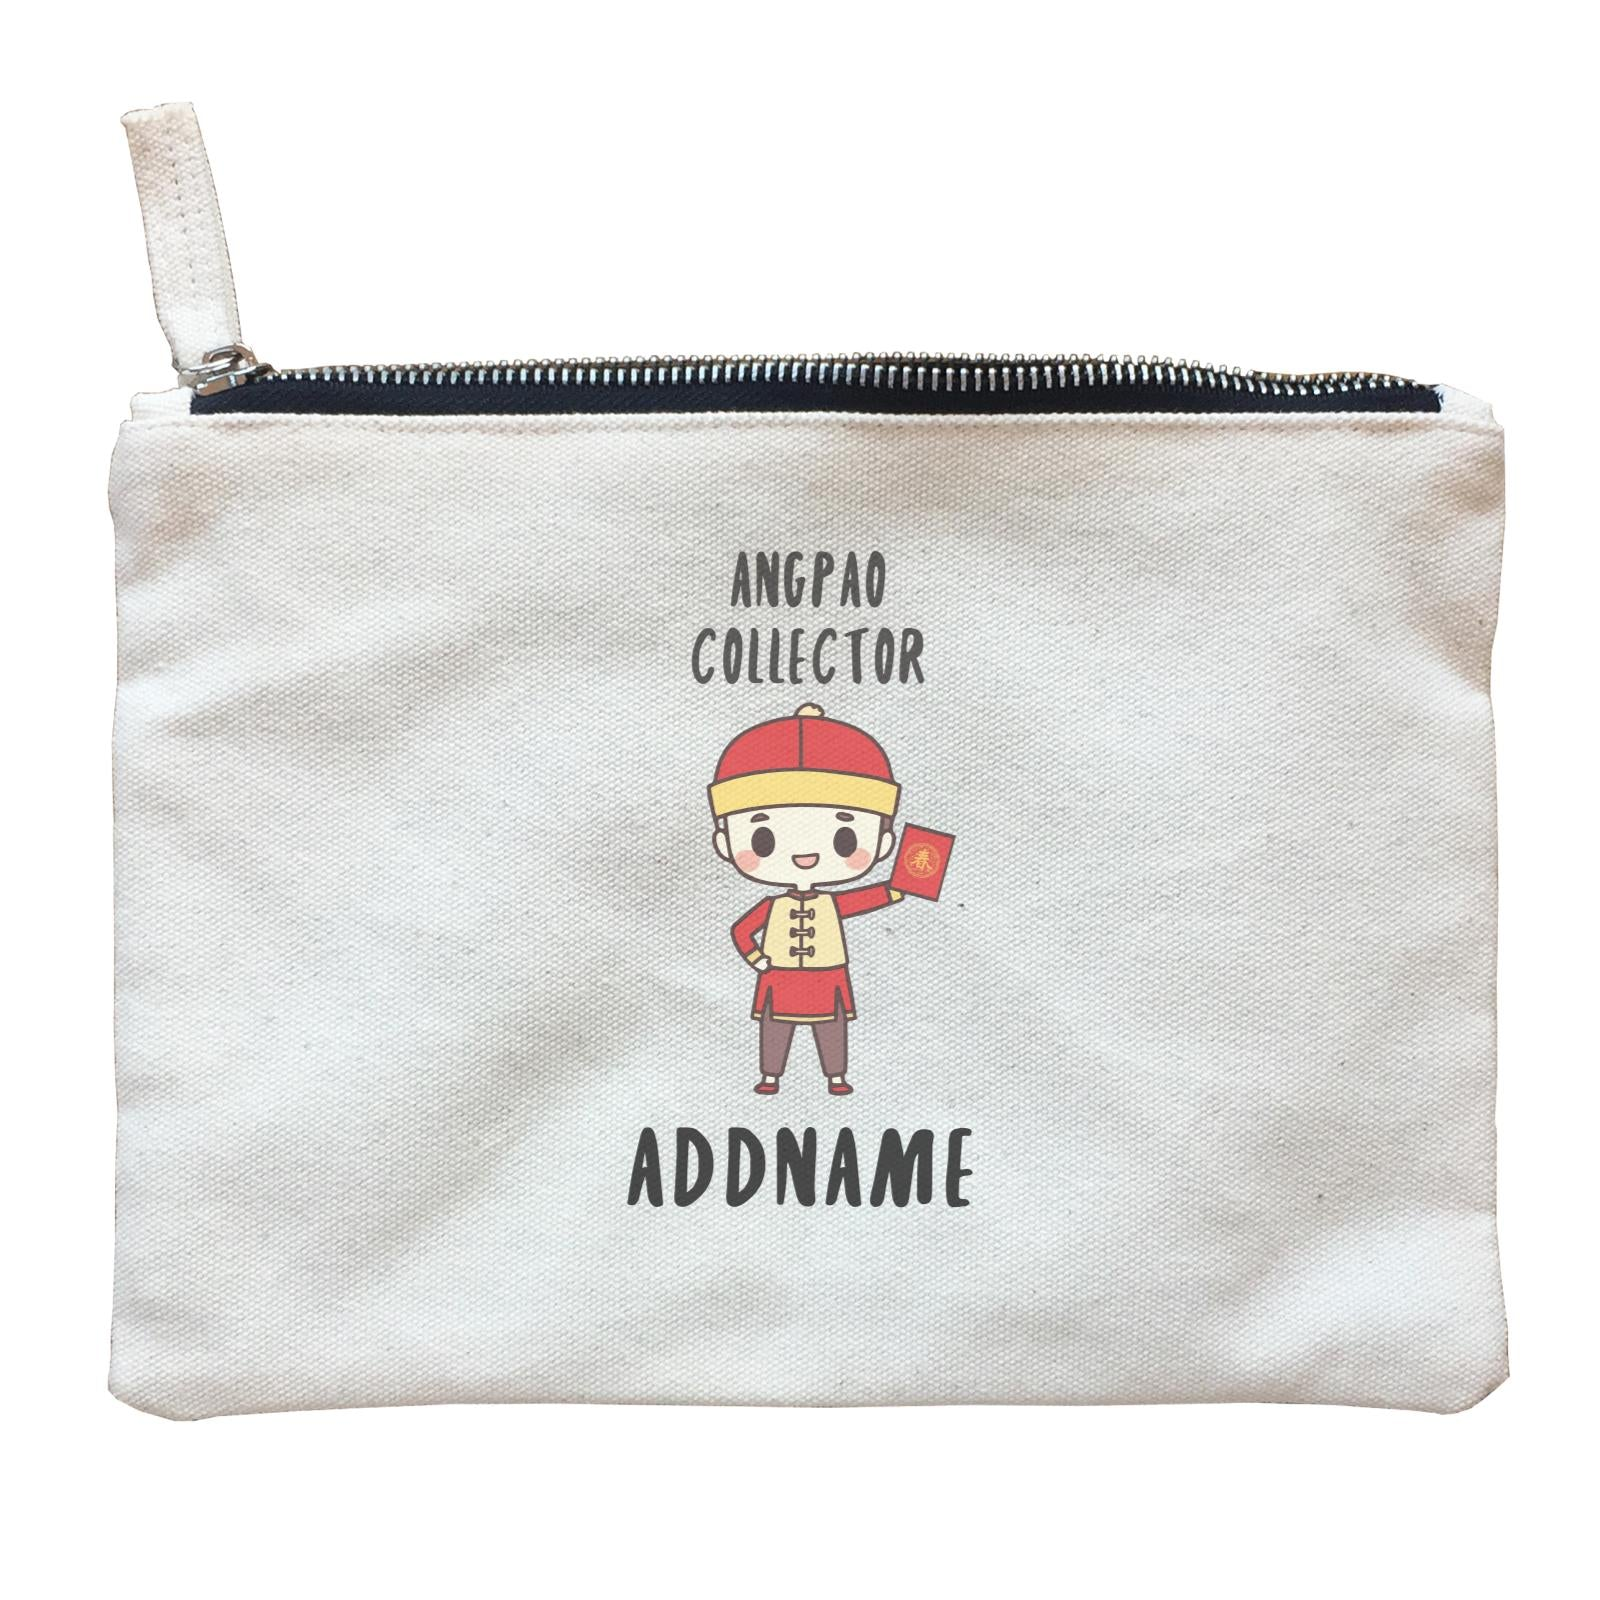 Chinese New Year Cute Boy Ang Pao Collector Zipper Pouch